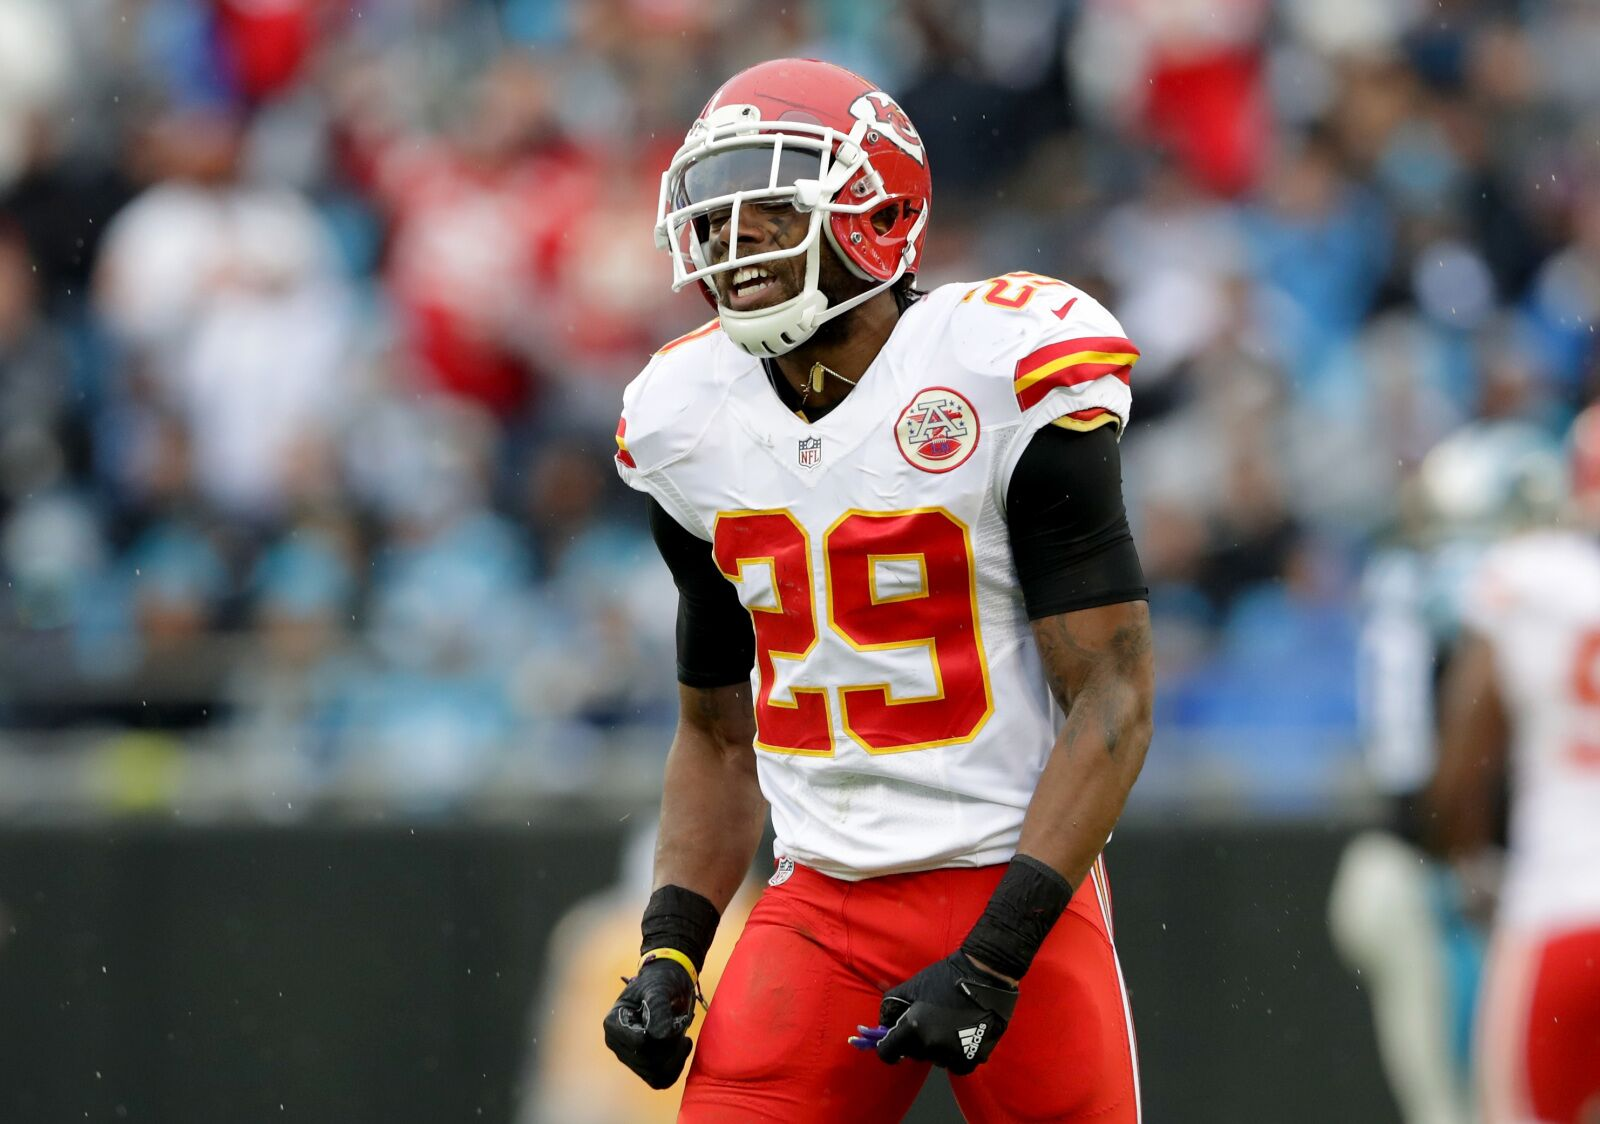 Carolina Panthers: Free agent safety option, Eric Berry